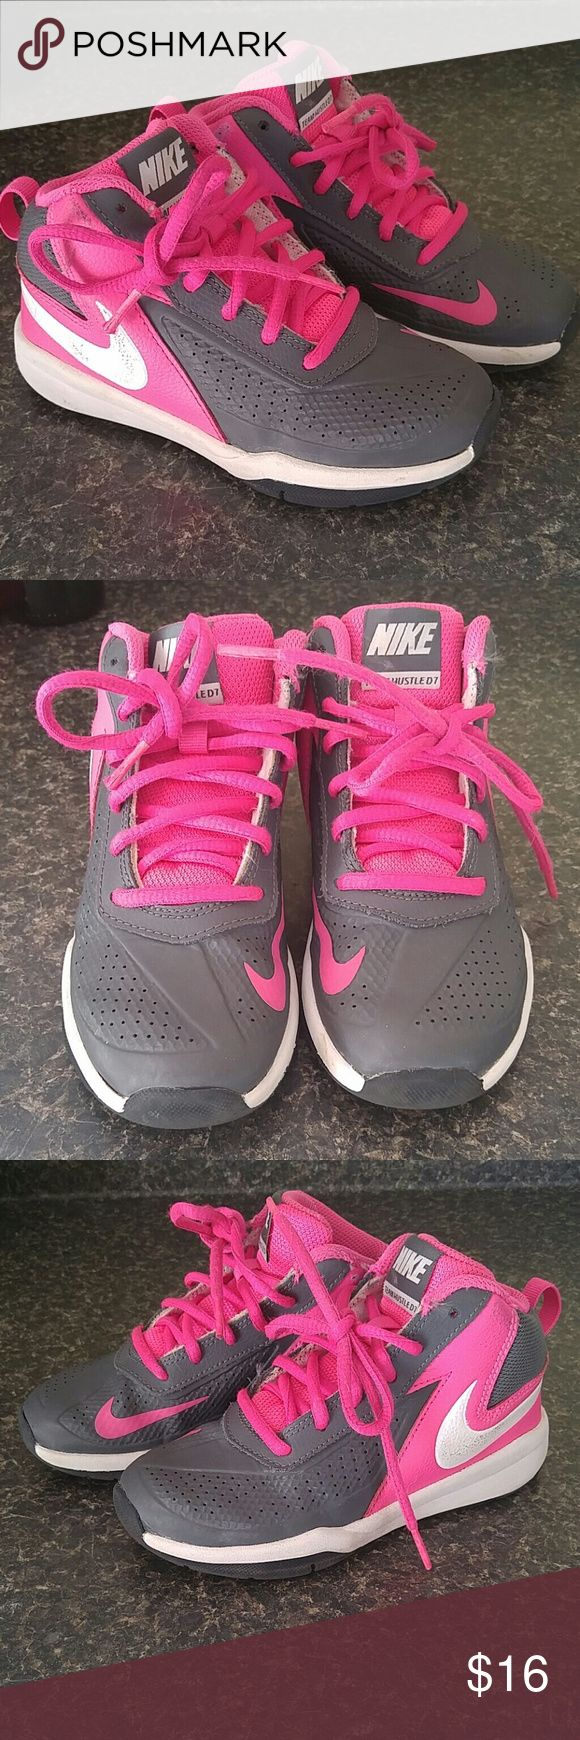 Nike Team Hustle mid tops Great shape. Some usage and light show of wear. Size 12c. Nike Shoes Sneakers